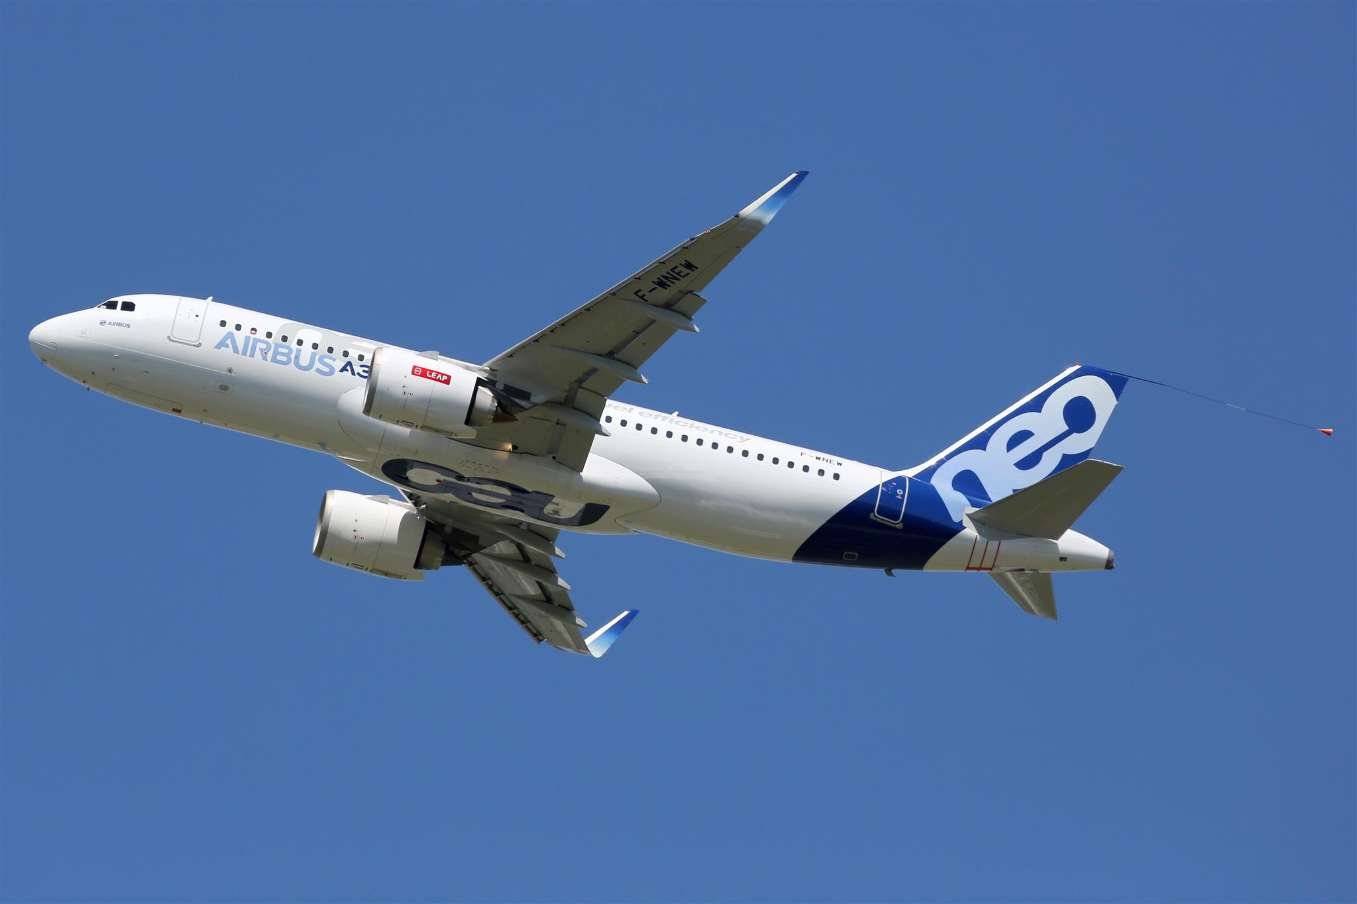 FL Technics provides line maintenance services to Airbus A320neo family aircraft